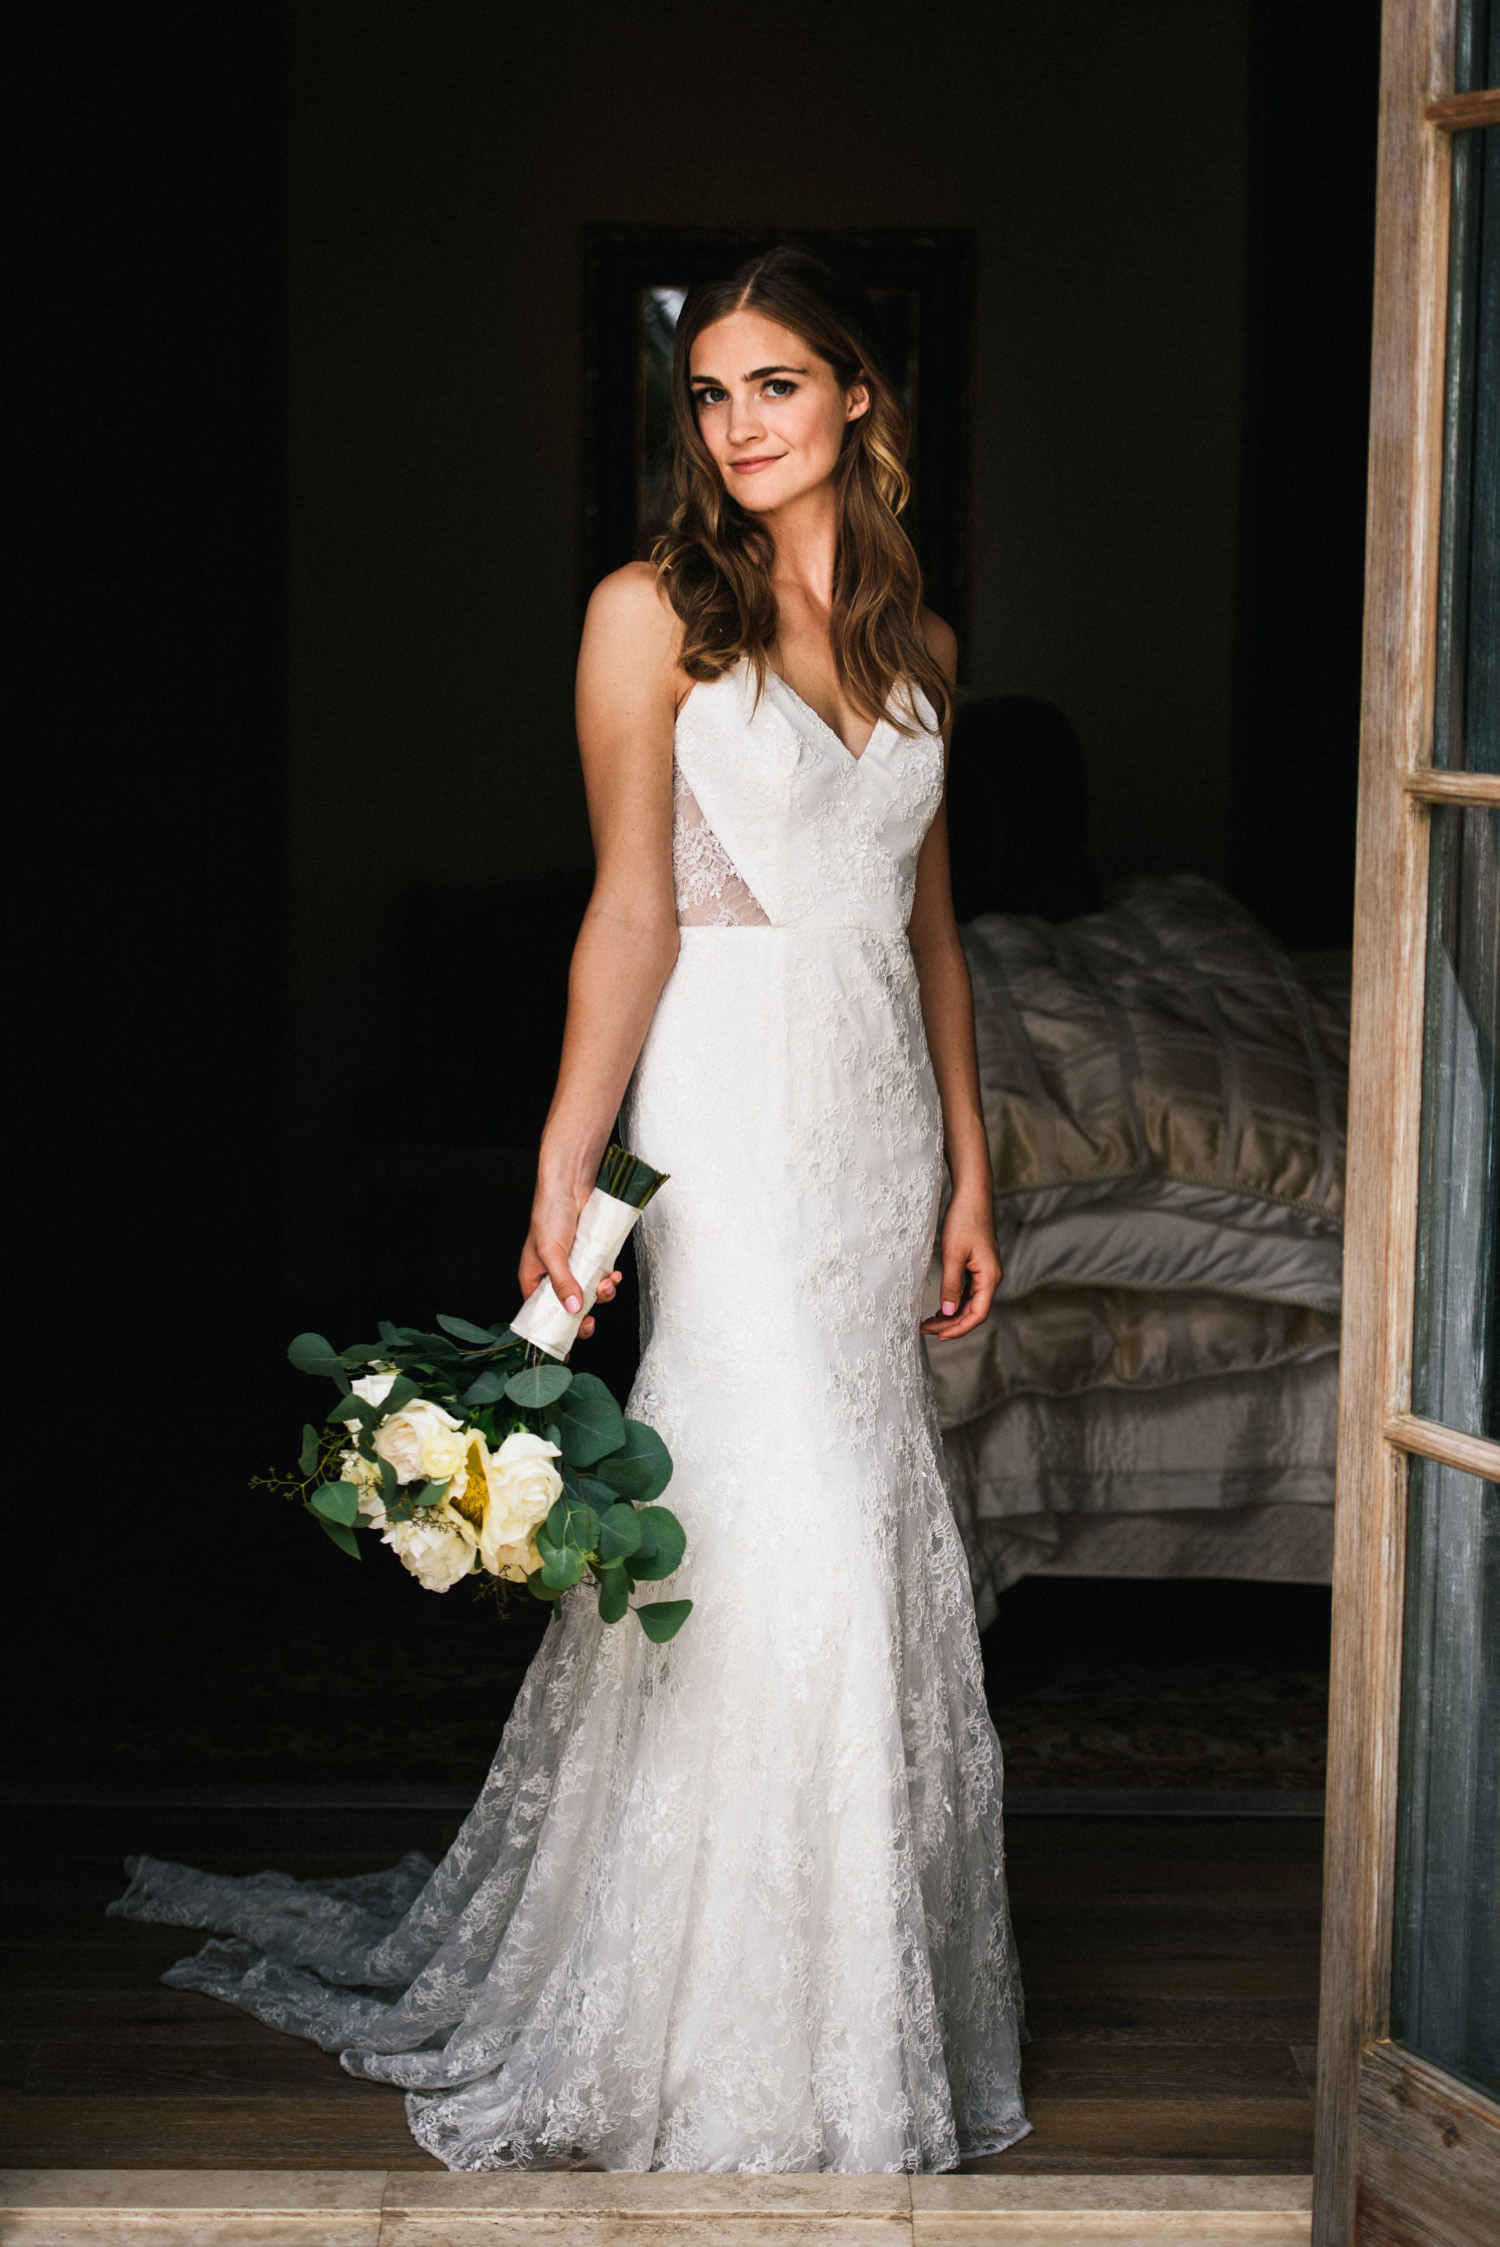 beautiful bride portrait with window light - montecito wedding photography